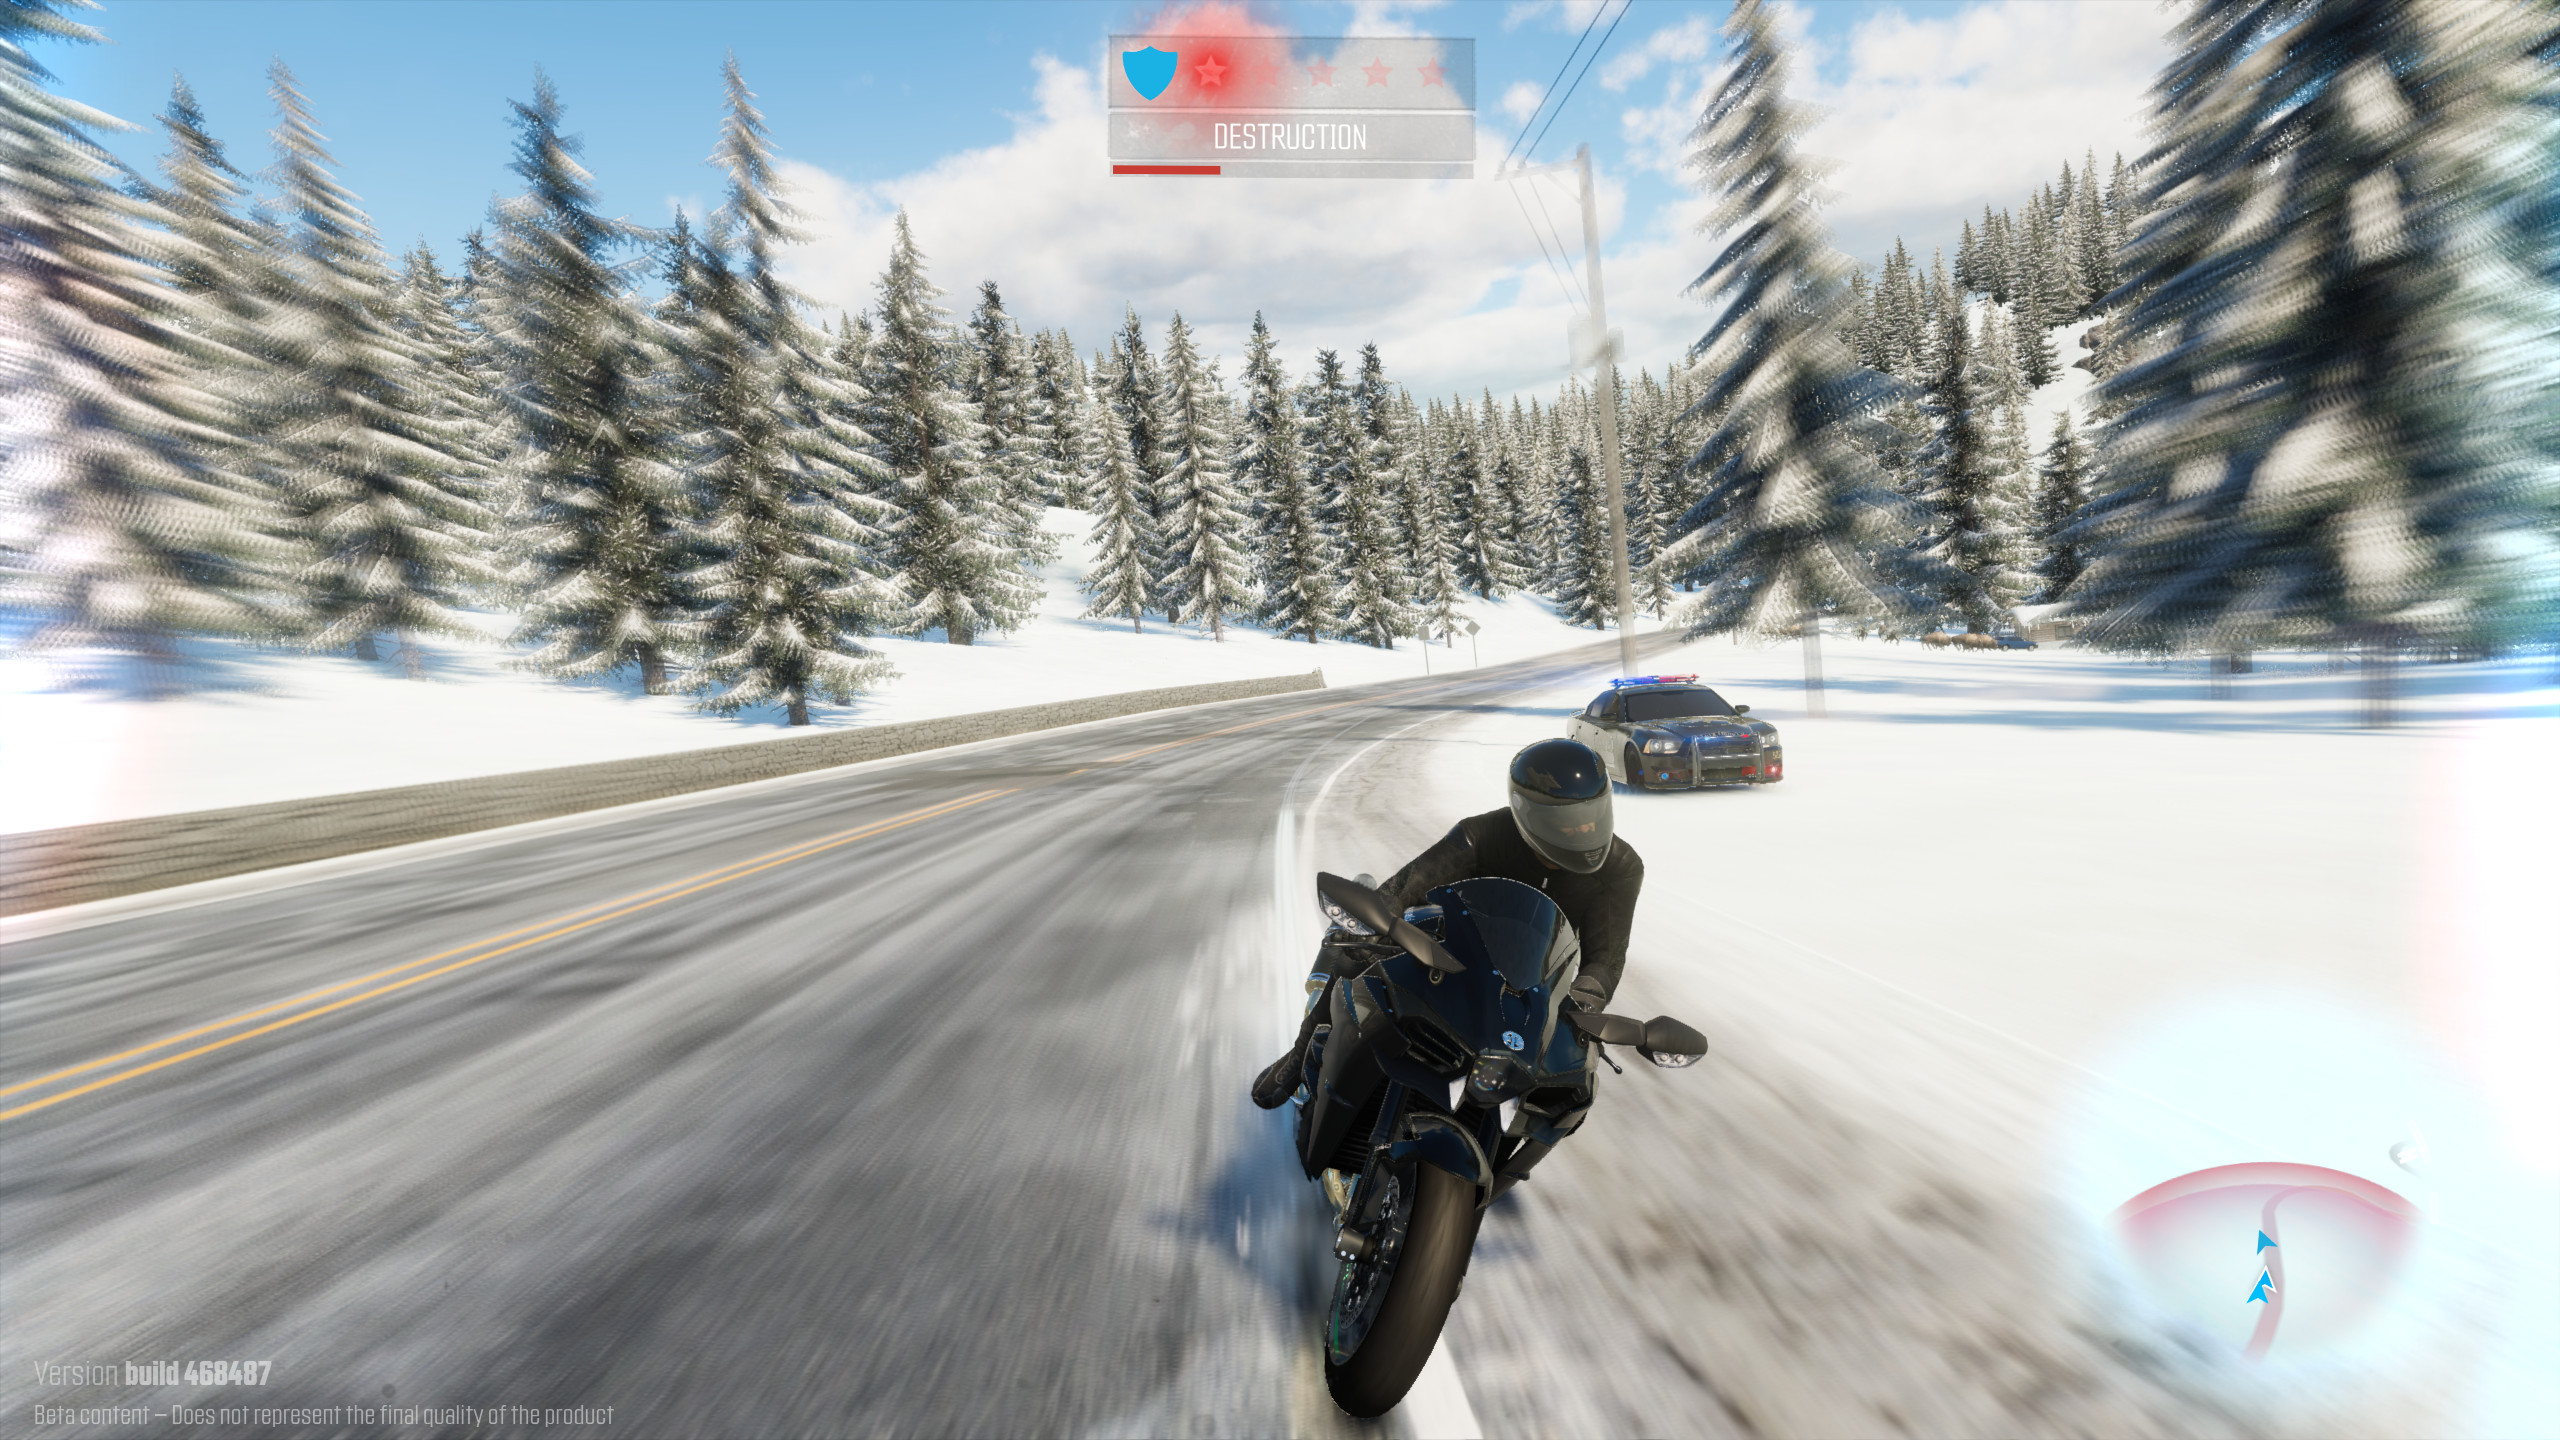 Because the best vehicle for a snowy road is a two-wheel superbike.